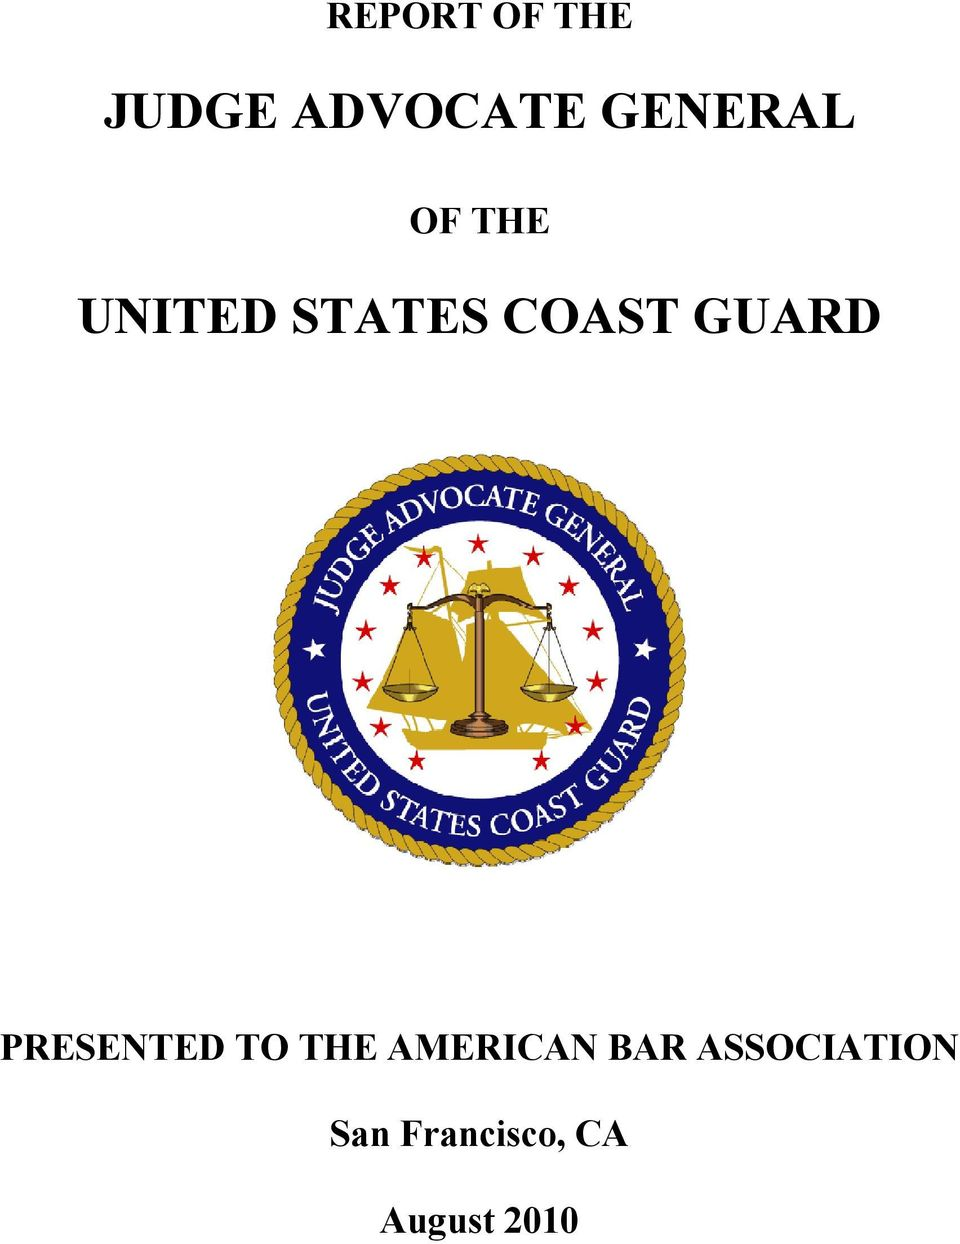 GUARD PRESENTED TO THE AMERICAN BAR